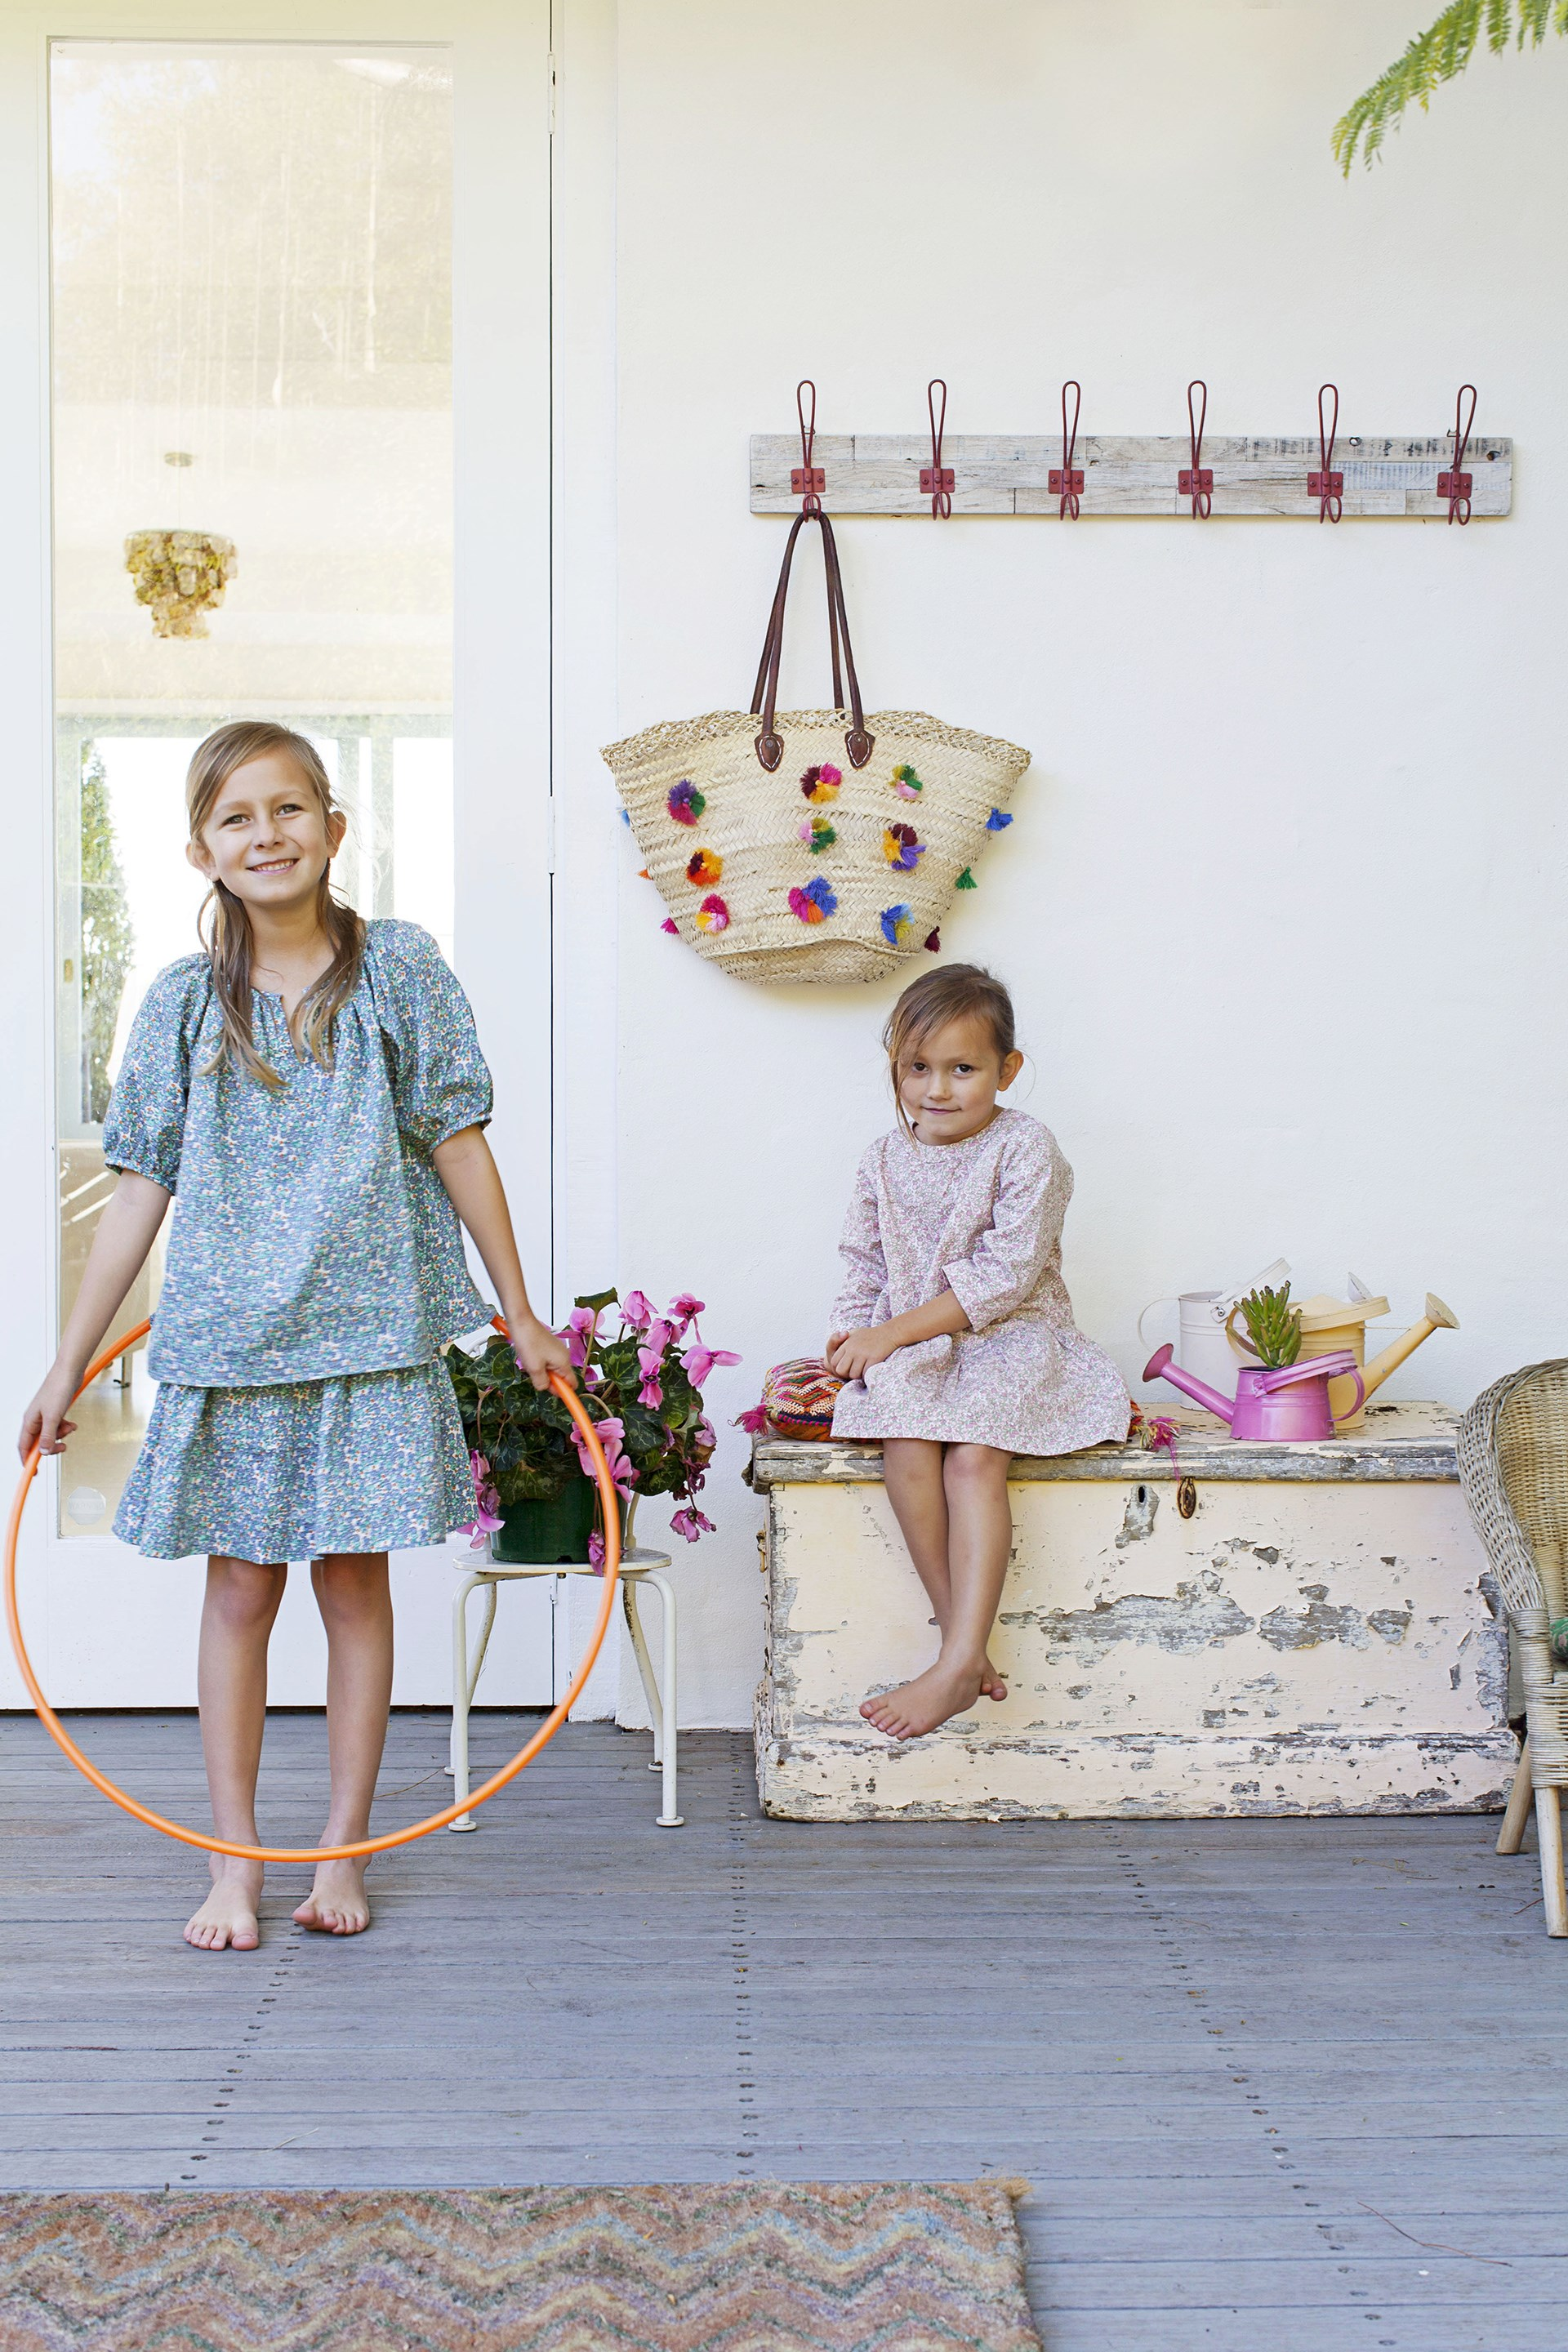 """Outdoor spaces are a must for kids, just ask Ella and Gisele. The back verandah of their [Moroccan-inspired beach house](http://www.homestolove.com.au/gallery-heidis-moroccan-inspired-beach-house-1830